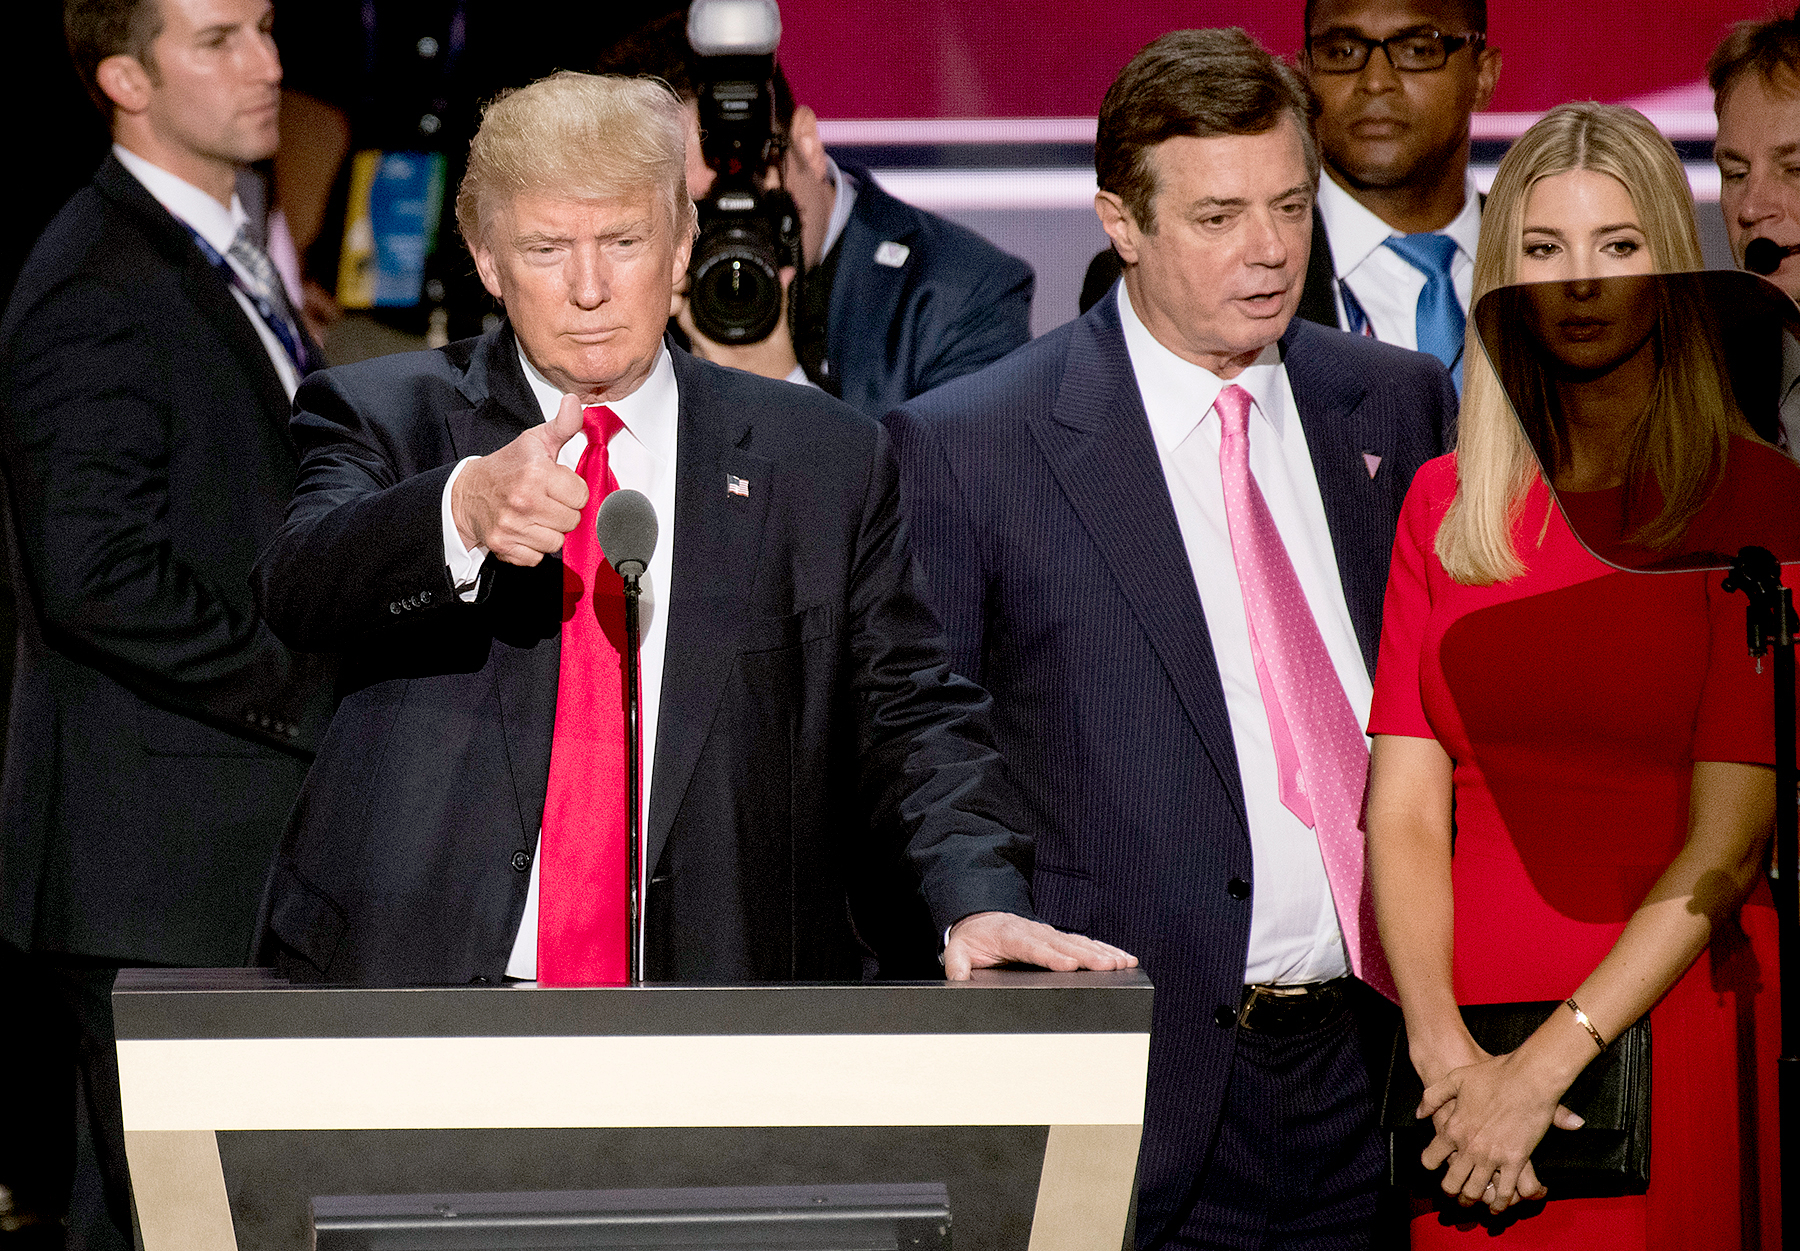 Donald Trump, flanked by campaign manager Paul Manafort and daughter Ivanka, checks the podium early Thursday afternoon in preparation for accepting the GOP nomination to be President at the 2016 Republican National Convention in Cleveland, Ohio on Wednesday July 20, 2016.